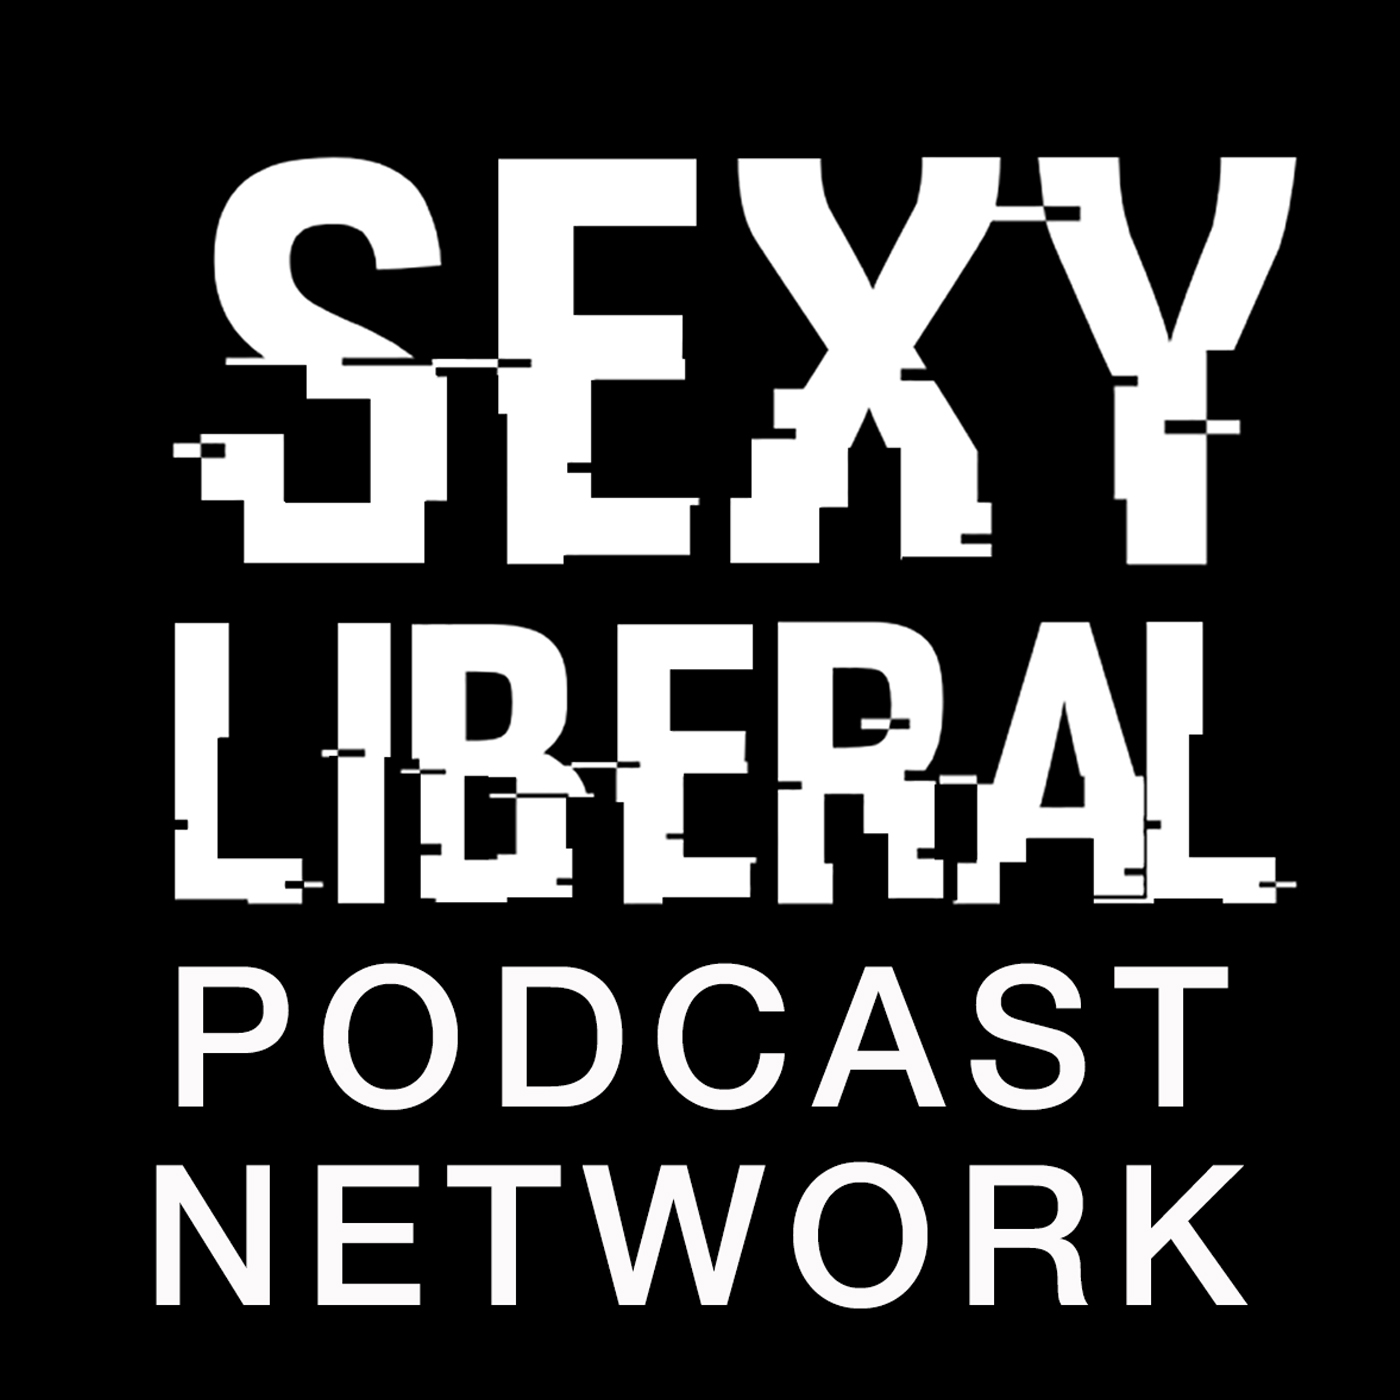 Sexy Liberal Podcast Network